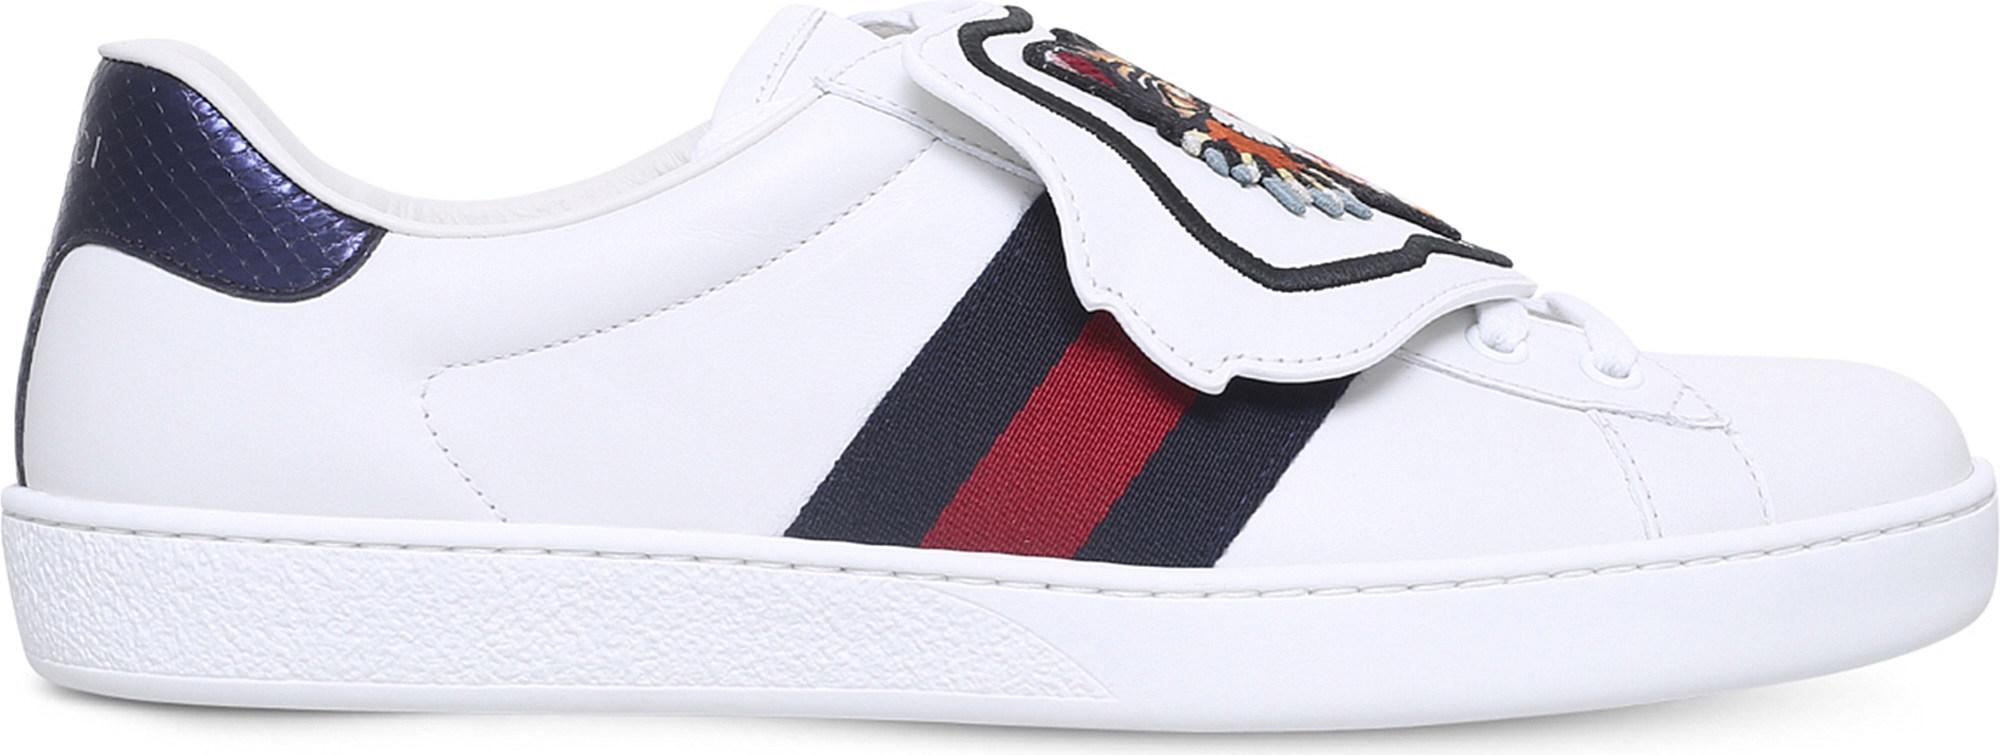 bd49c3cc70f Gucci New Ace Cat Patch Leather Trainers in White for Men - Lyst